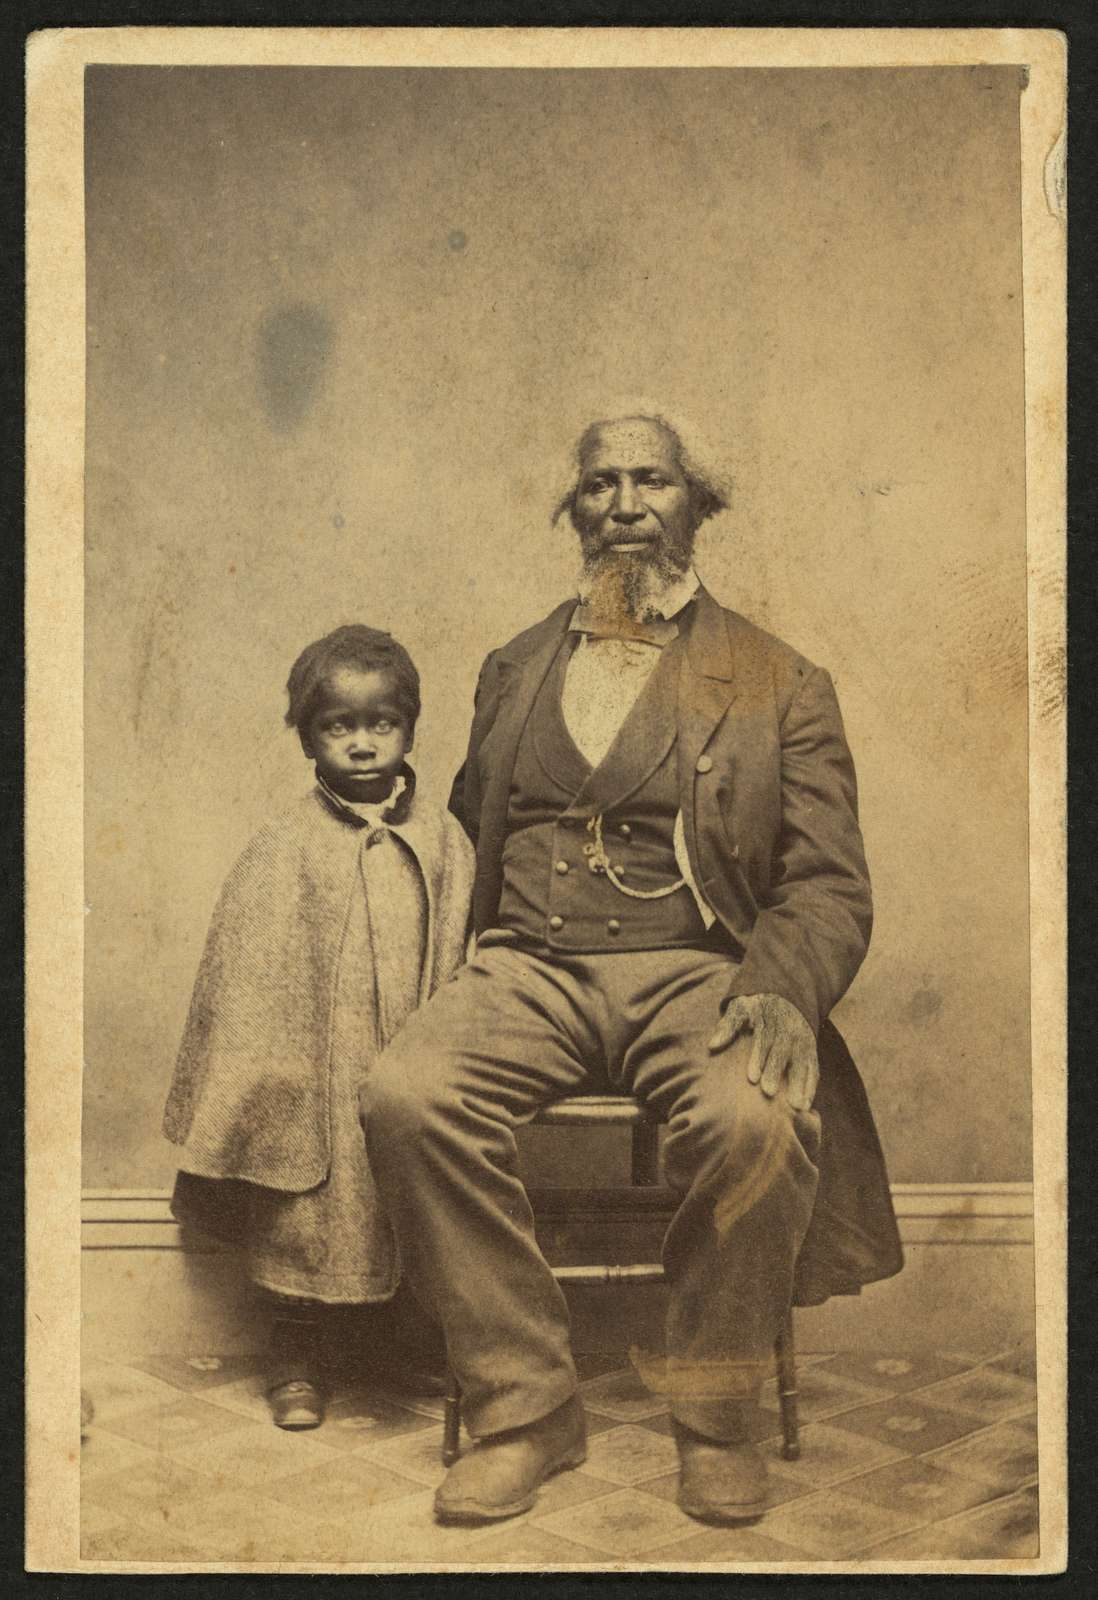 [African American man and child, full-length portrait, facing front] / Bundy & Williams, photographers, Middleton, Conn.